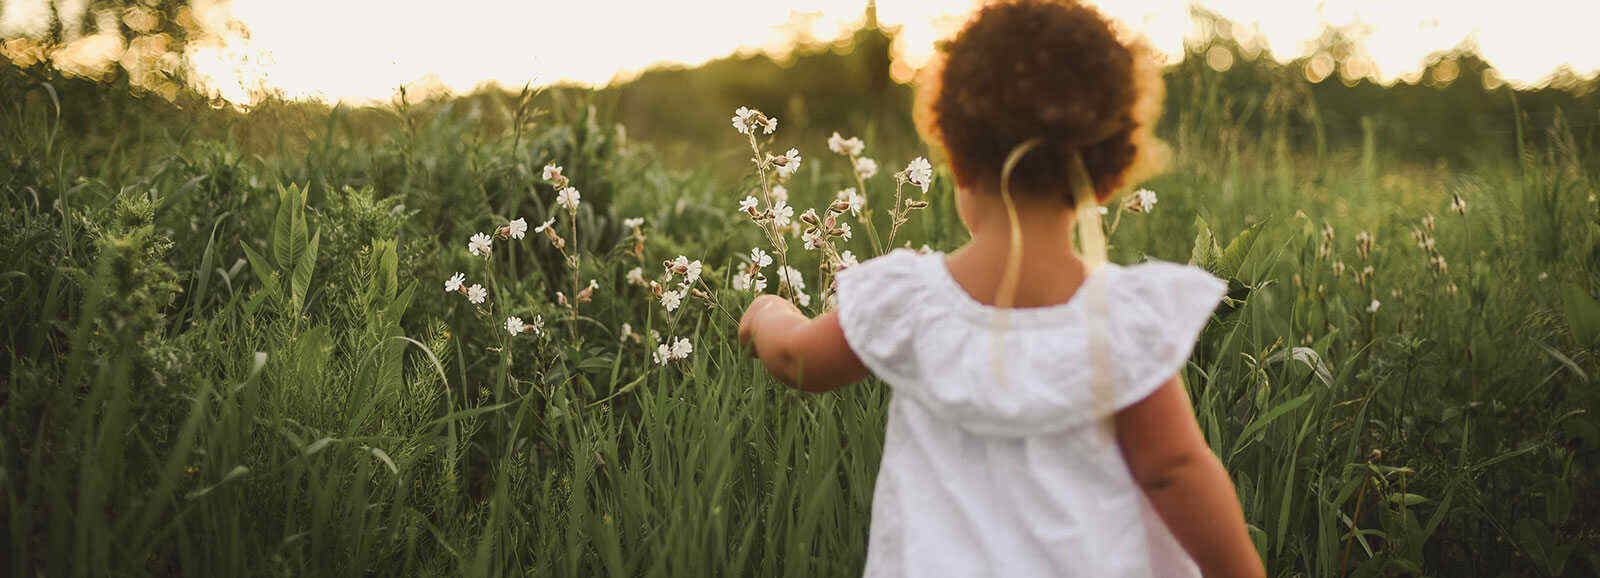 little girl in a white dress looking at field flowers